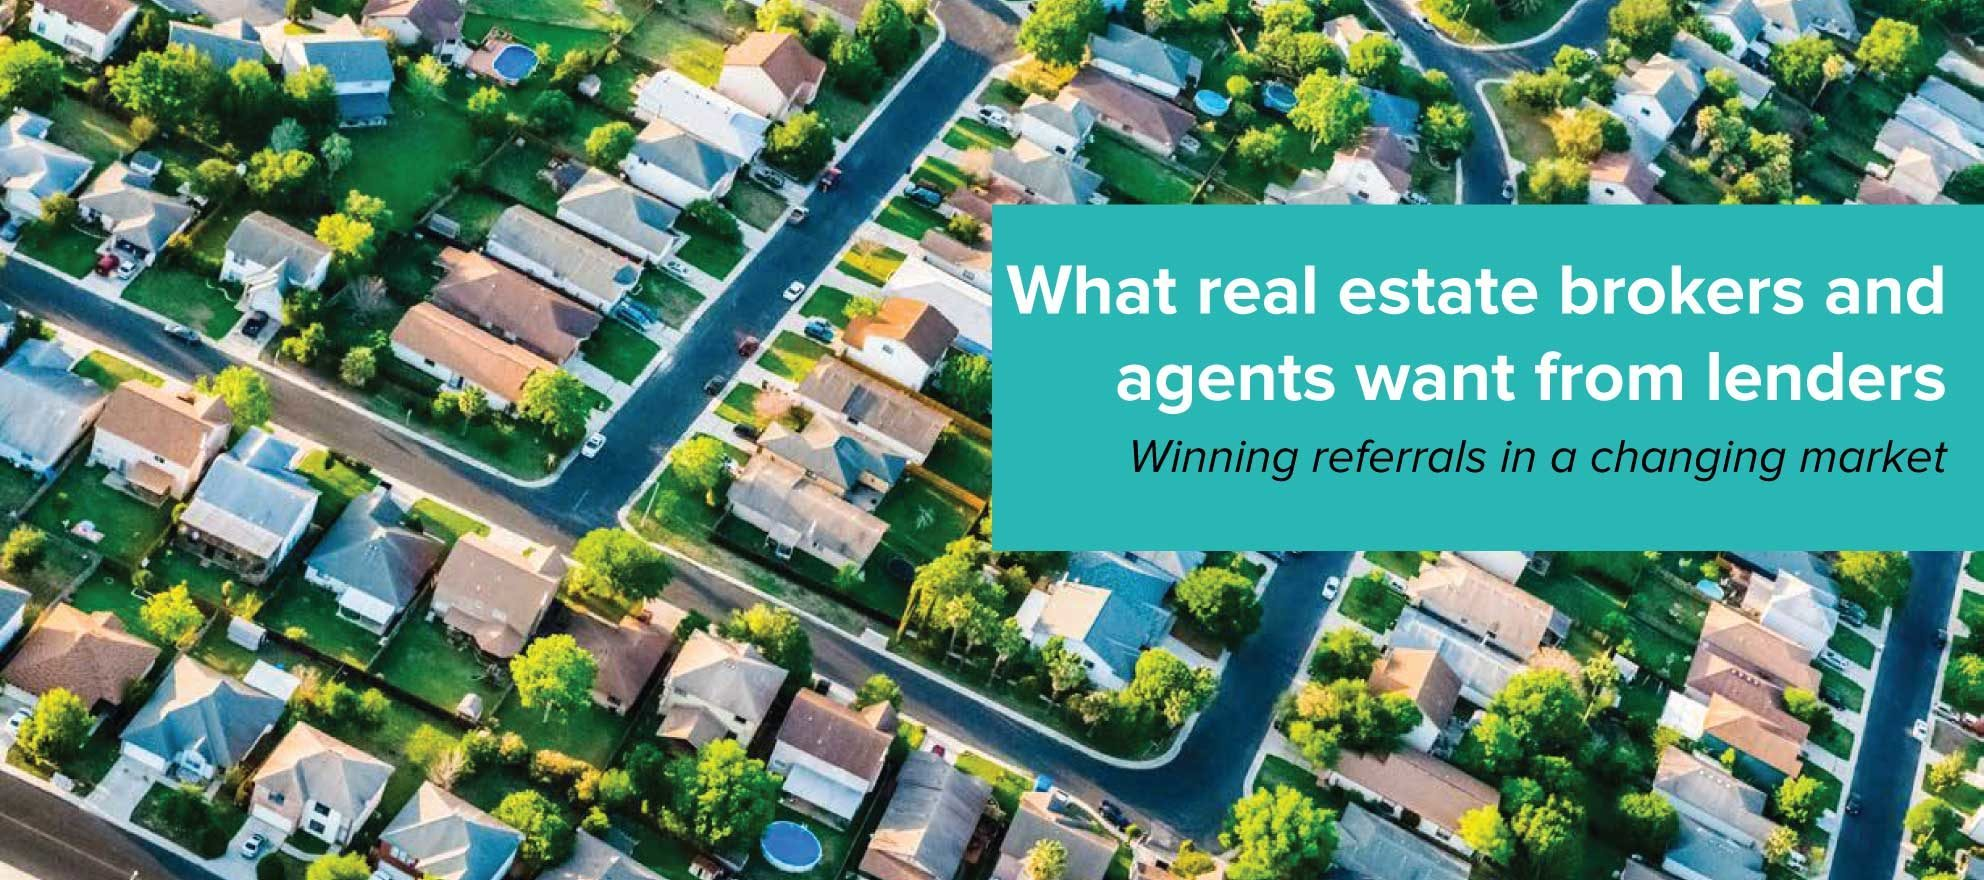 What real estate brokers and agents want from lenders [Special Report]